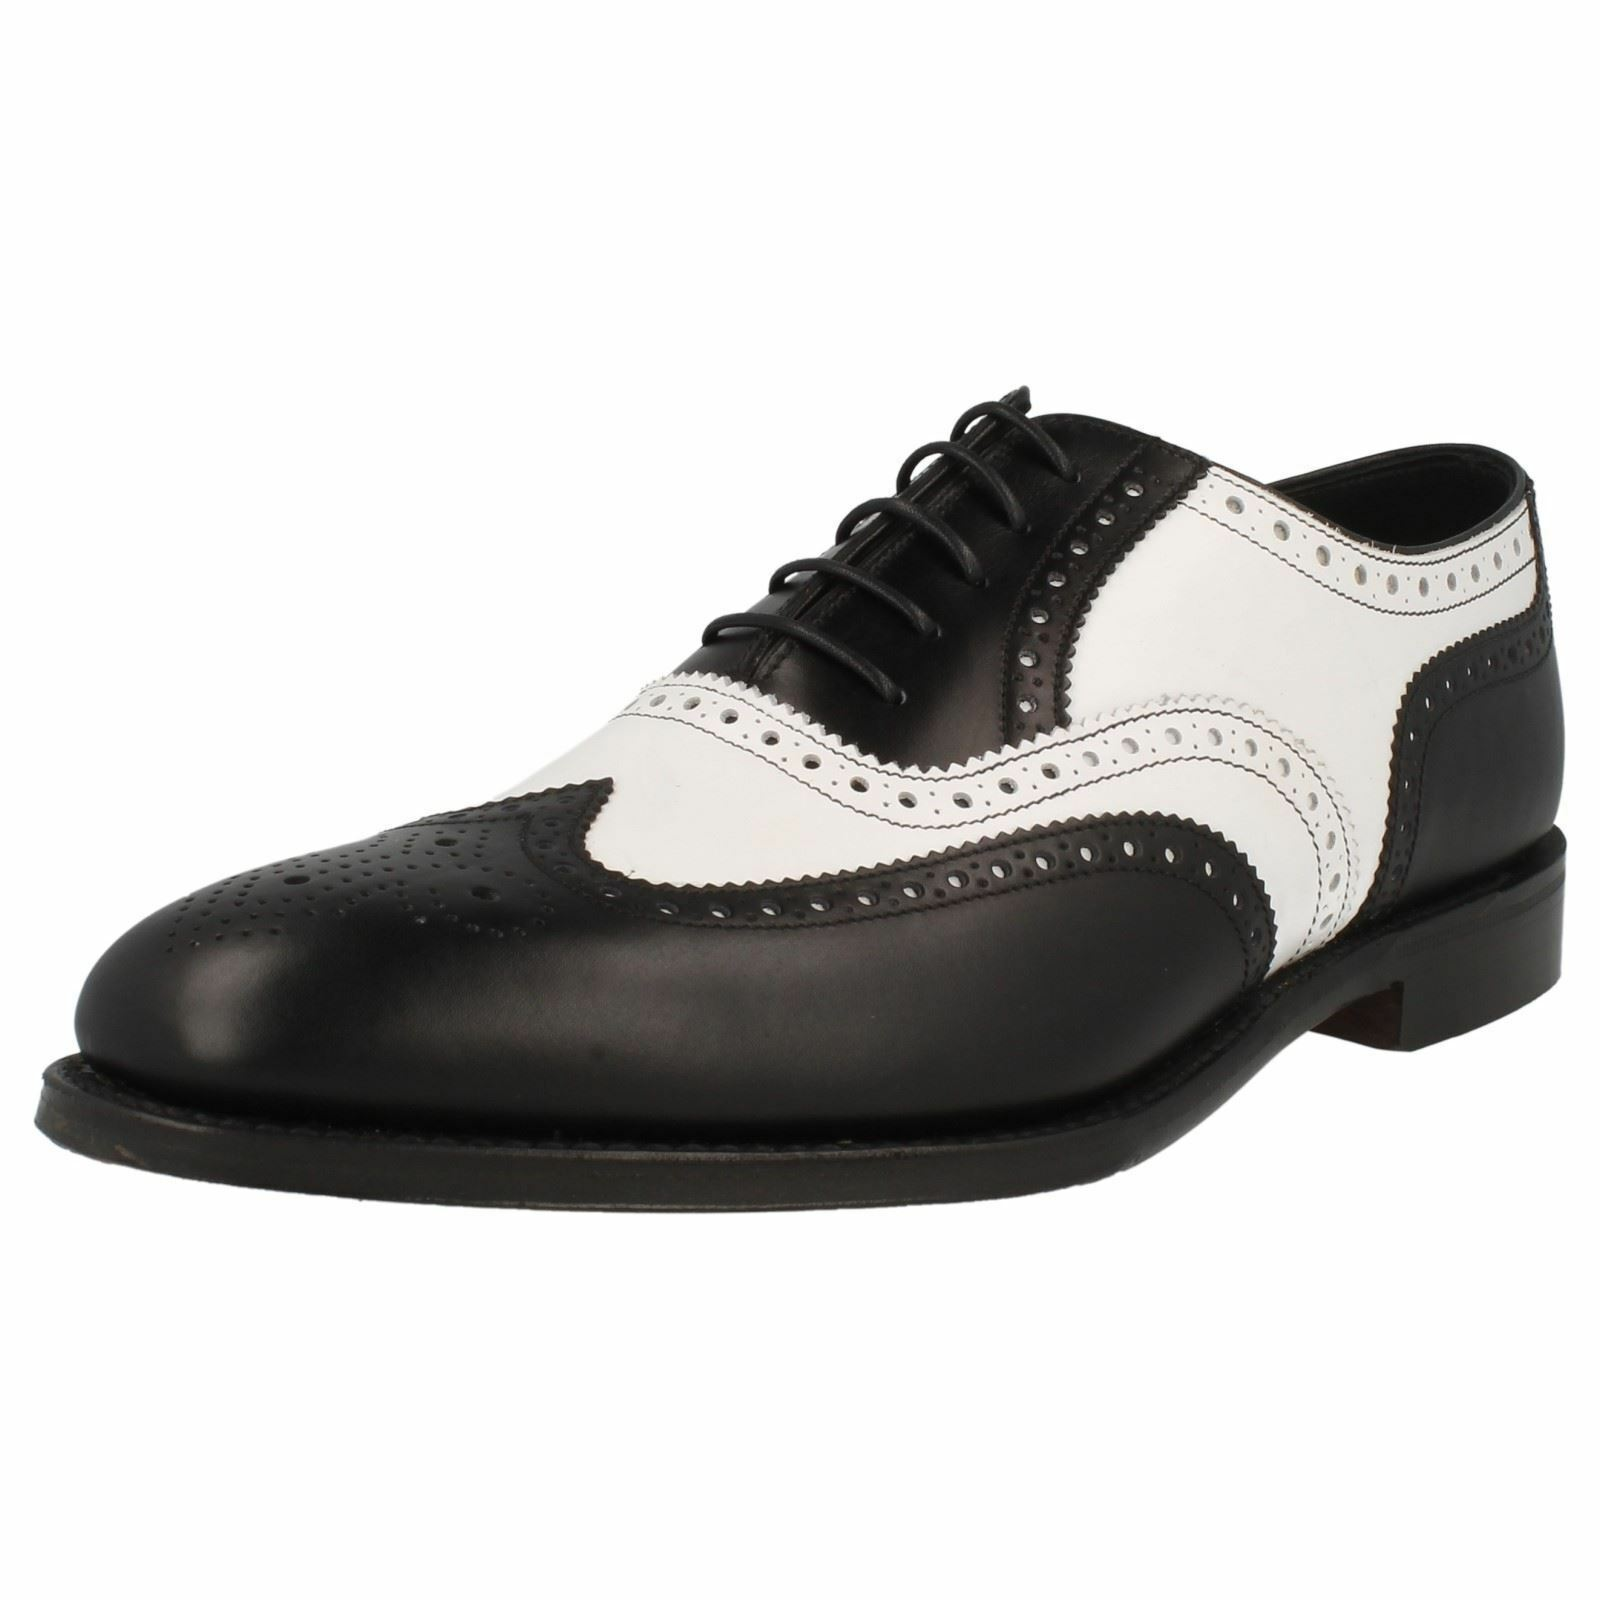 Loake 1880 Sloane Black & White Leather Traditional Brogue Shoes